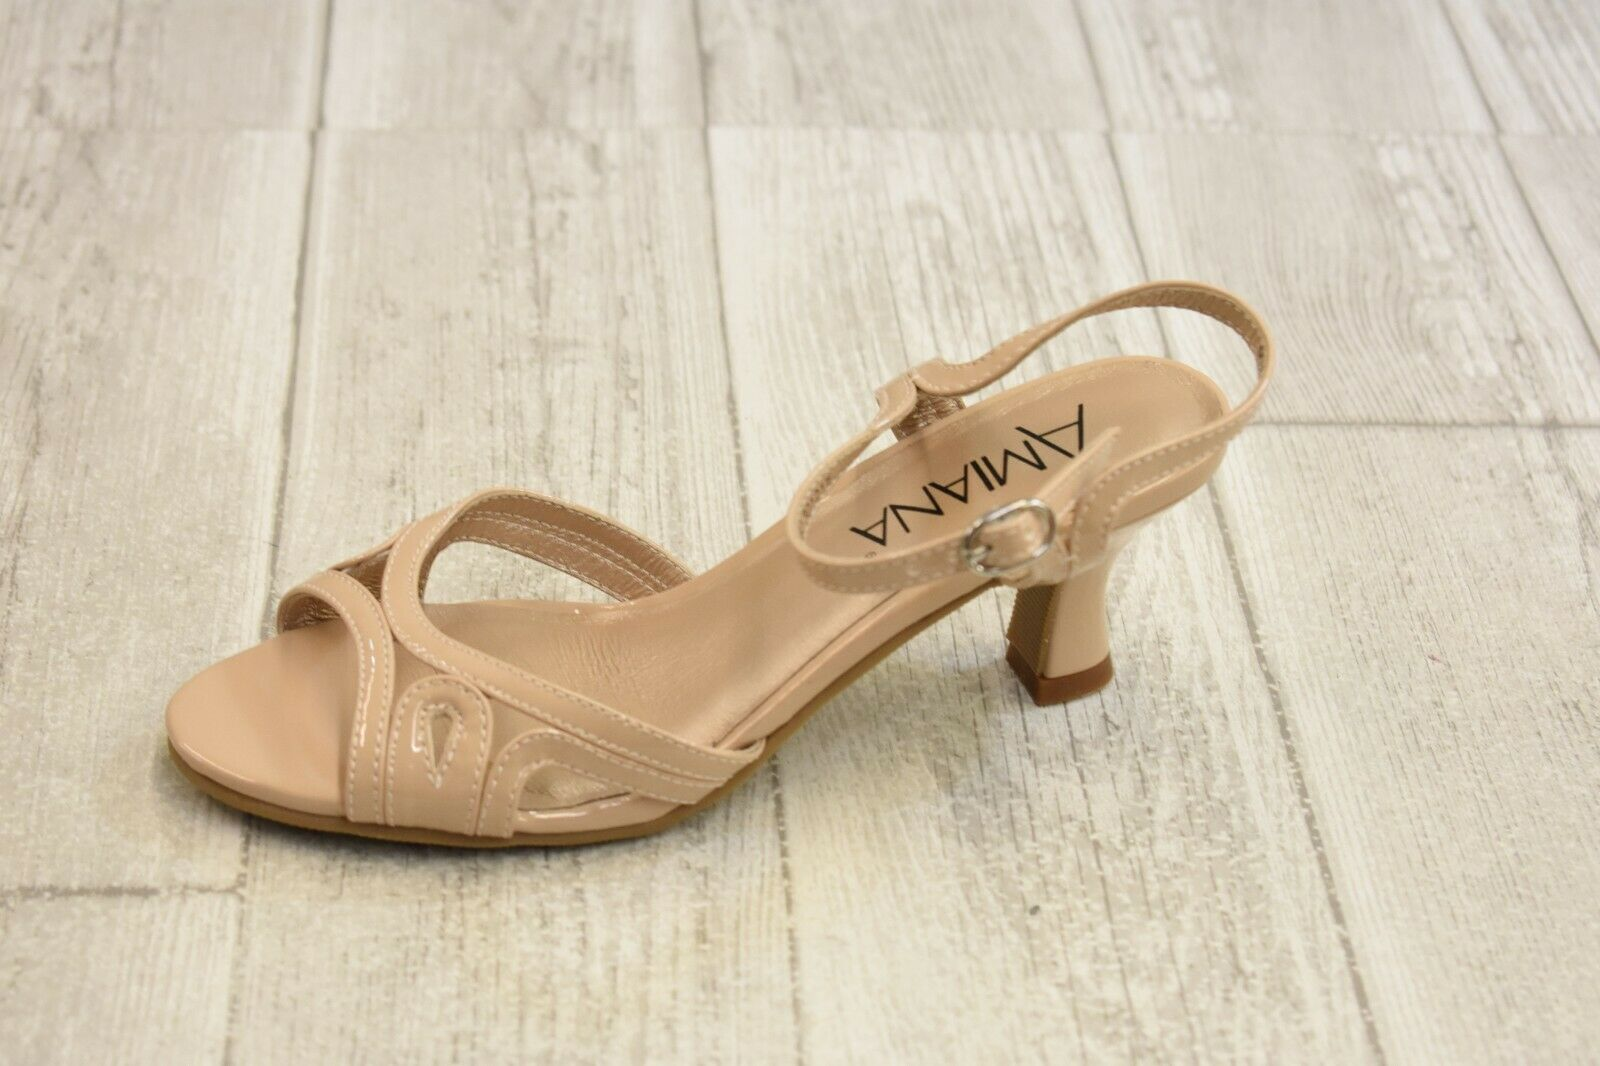 Amiana 15-A5181 Dress Sandals - Women's Size 5 - Nude